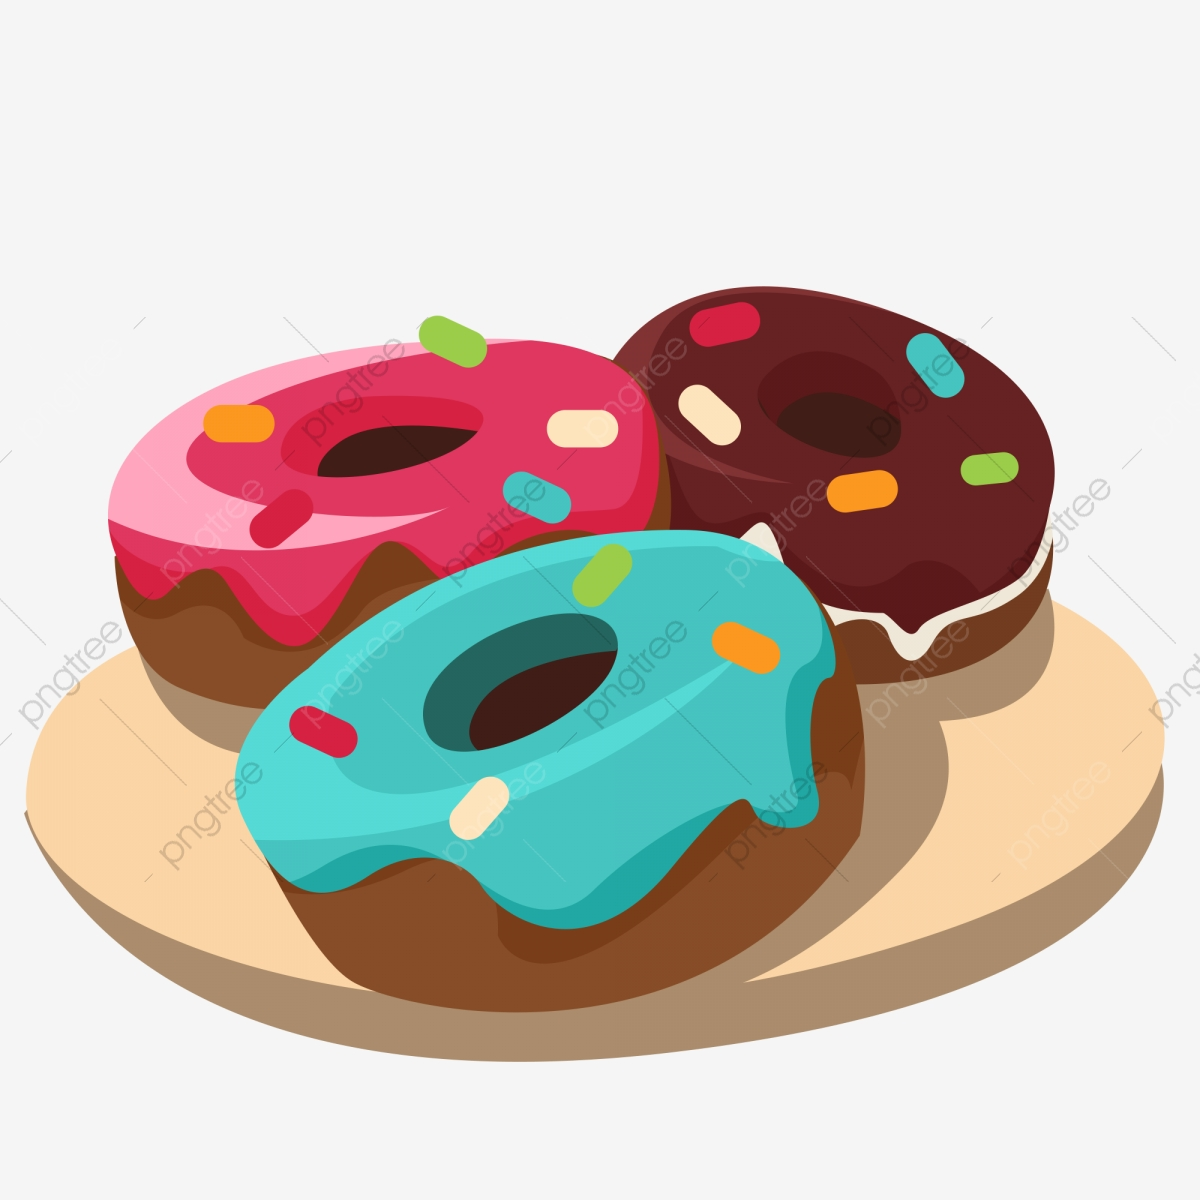 Donut clipart plate donut. Red blue chocolate a